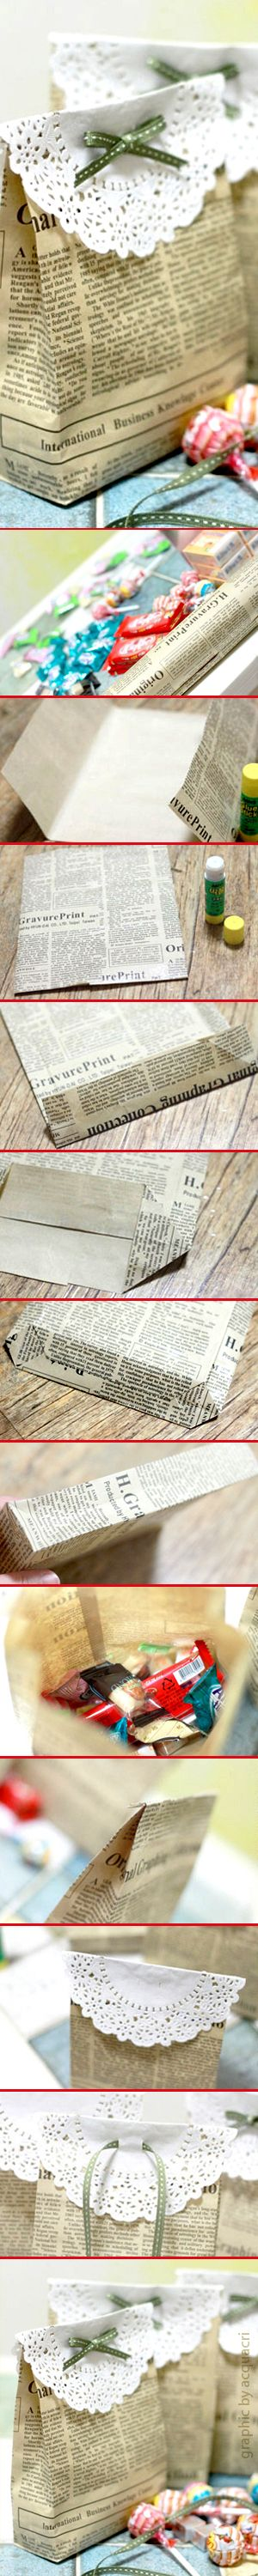 Come fare un sacchetto per regali o dolci dal giornale | How to make a gift bag from newspaper #AlmadenCrossing #zoomdiy